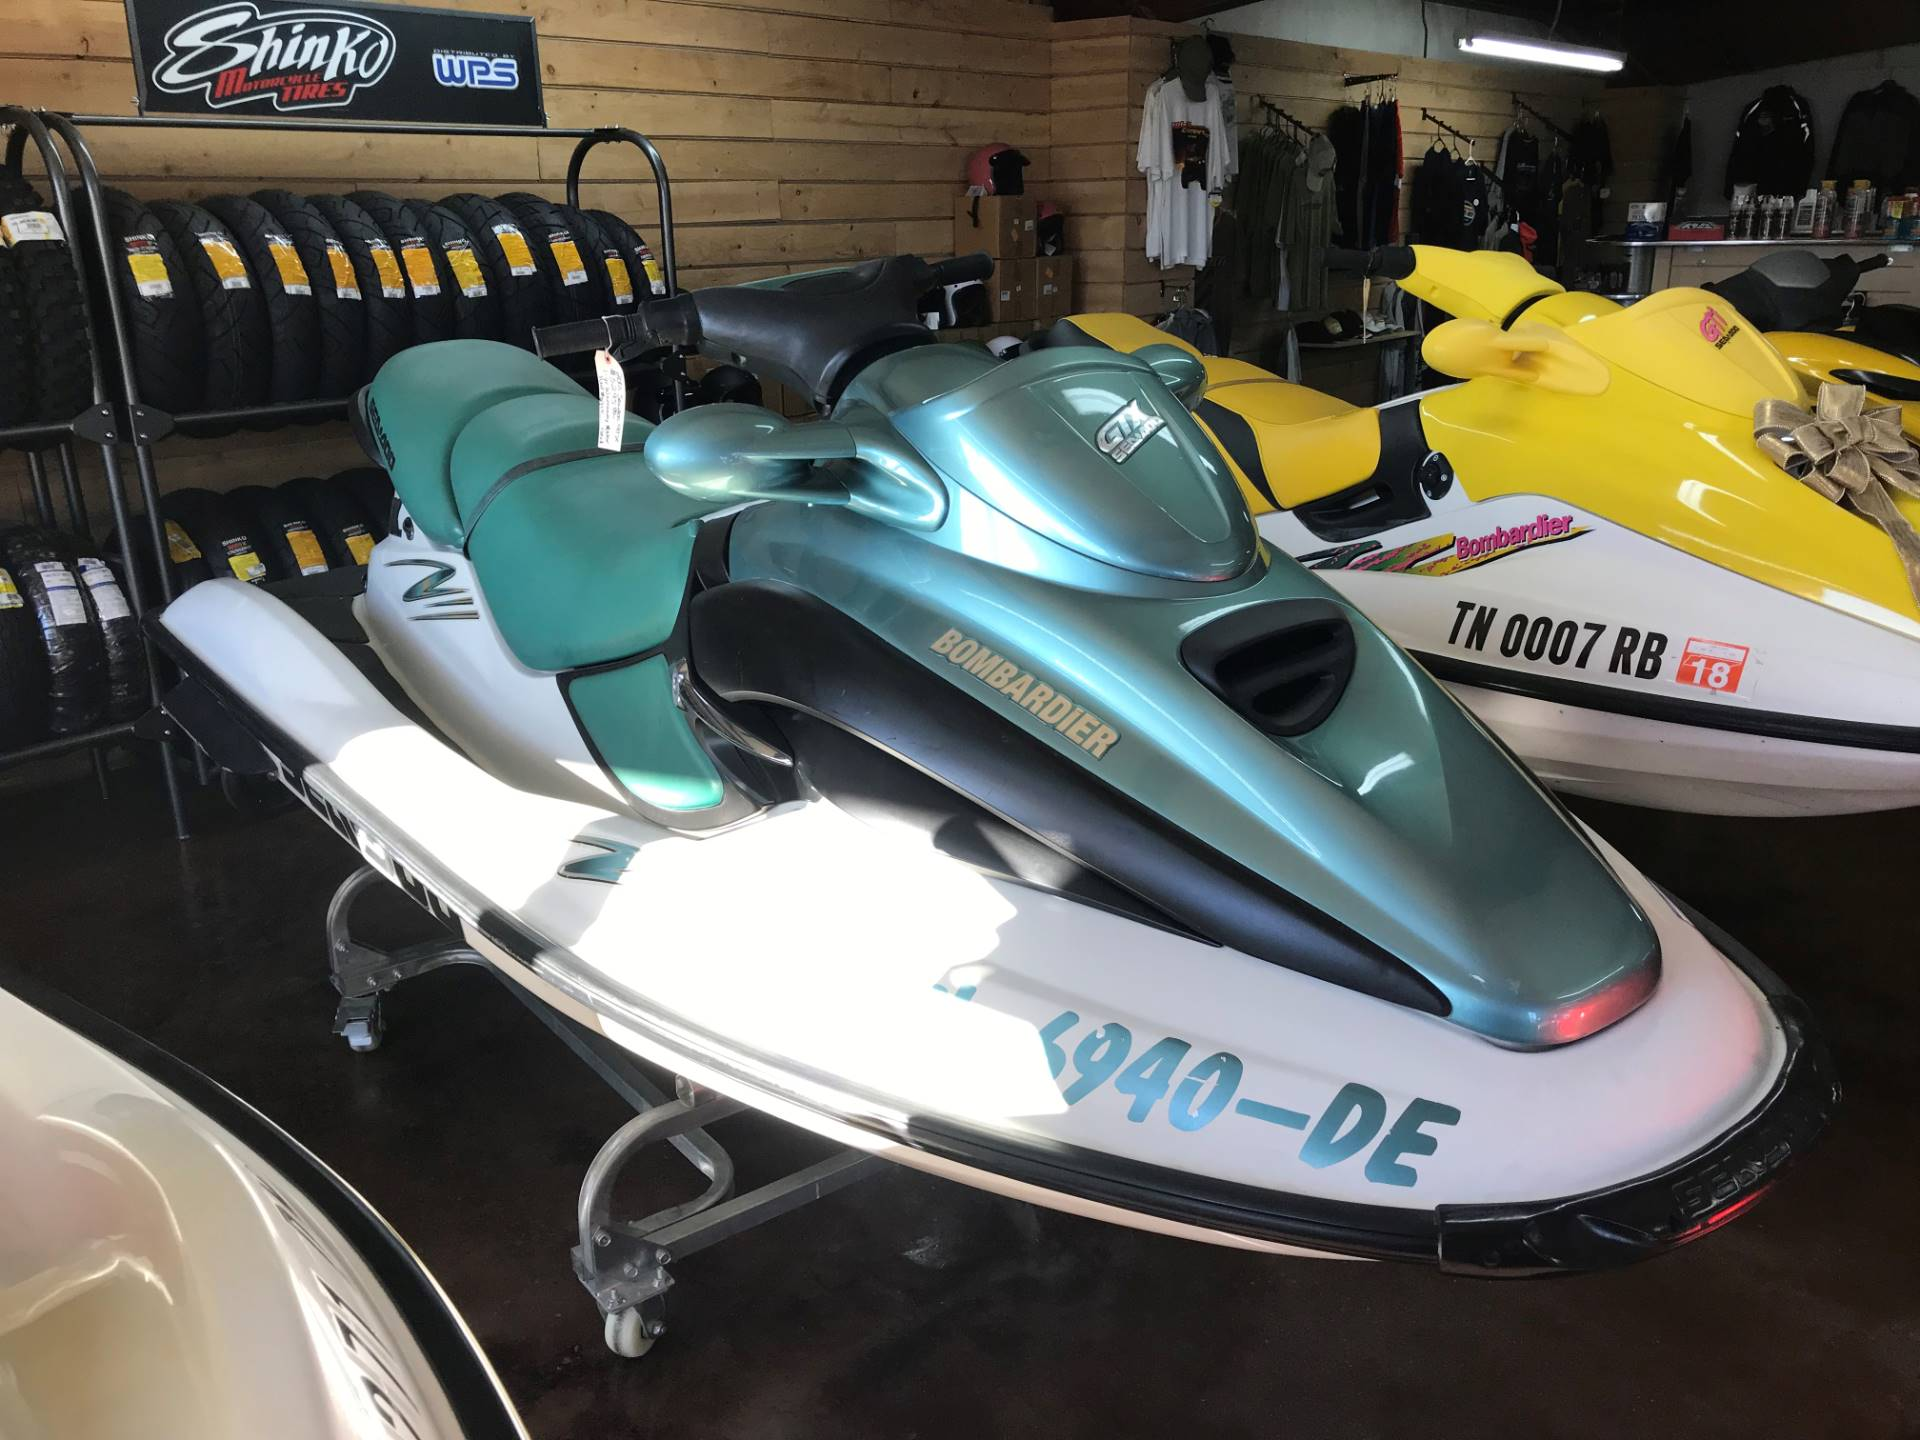 2001 Sea-Doo GTX RFI in Murfreesboro, Tennessee